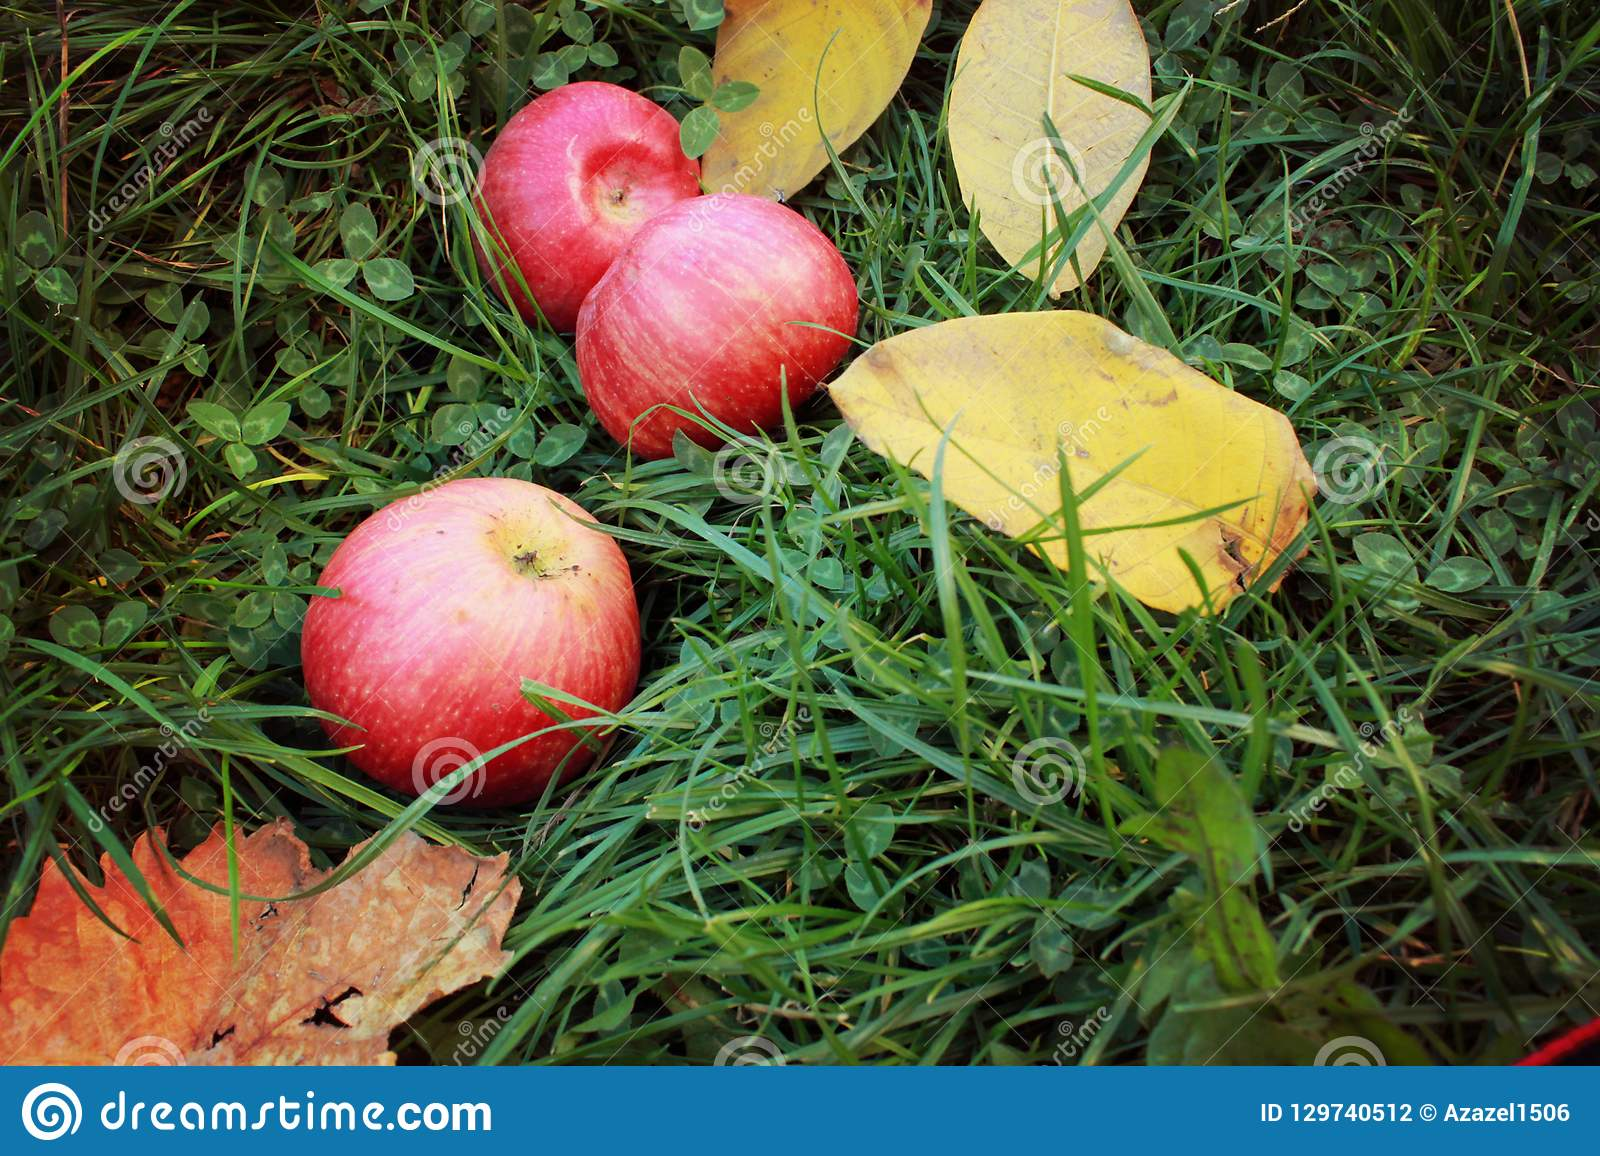 Red ripe apples on green grass, ripe fruits and yellow autumn leaves